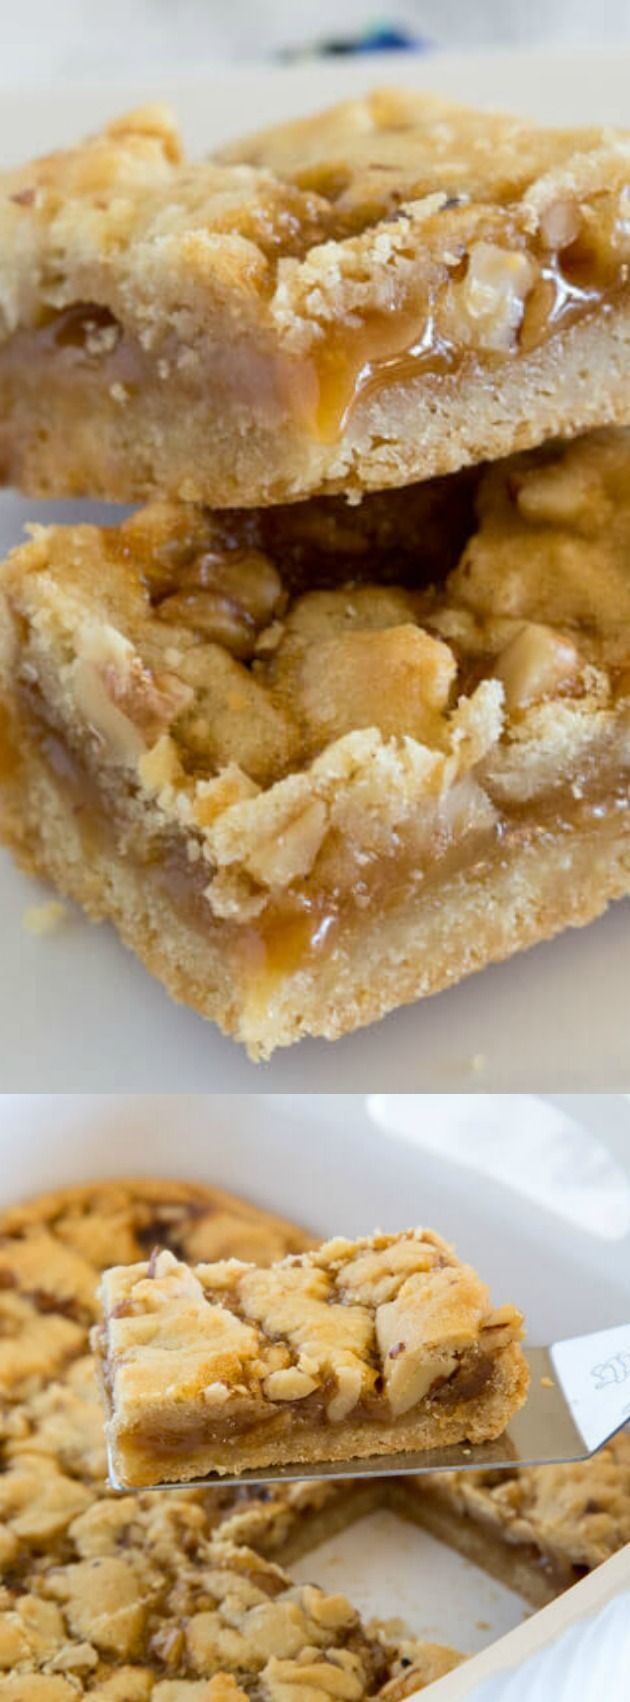 These Salted Caramel Crumble Bars from Erin at Dinners, Dishes, and Desserts use only 5 simple ingredients in the recipe! They come out of the oven buttery, delicious, and are so easy to make!